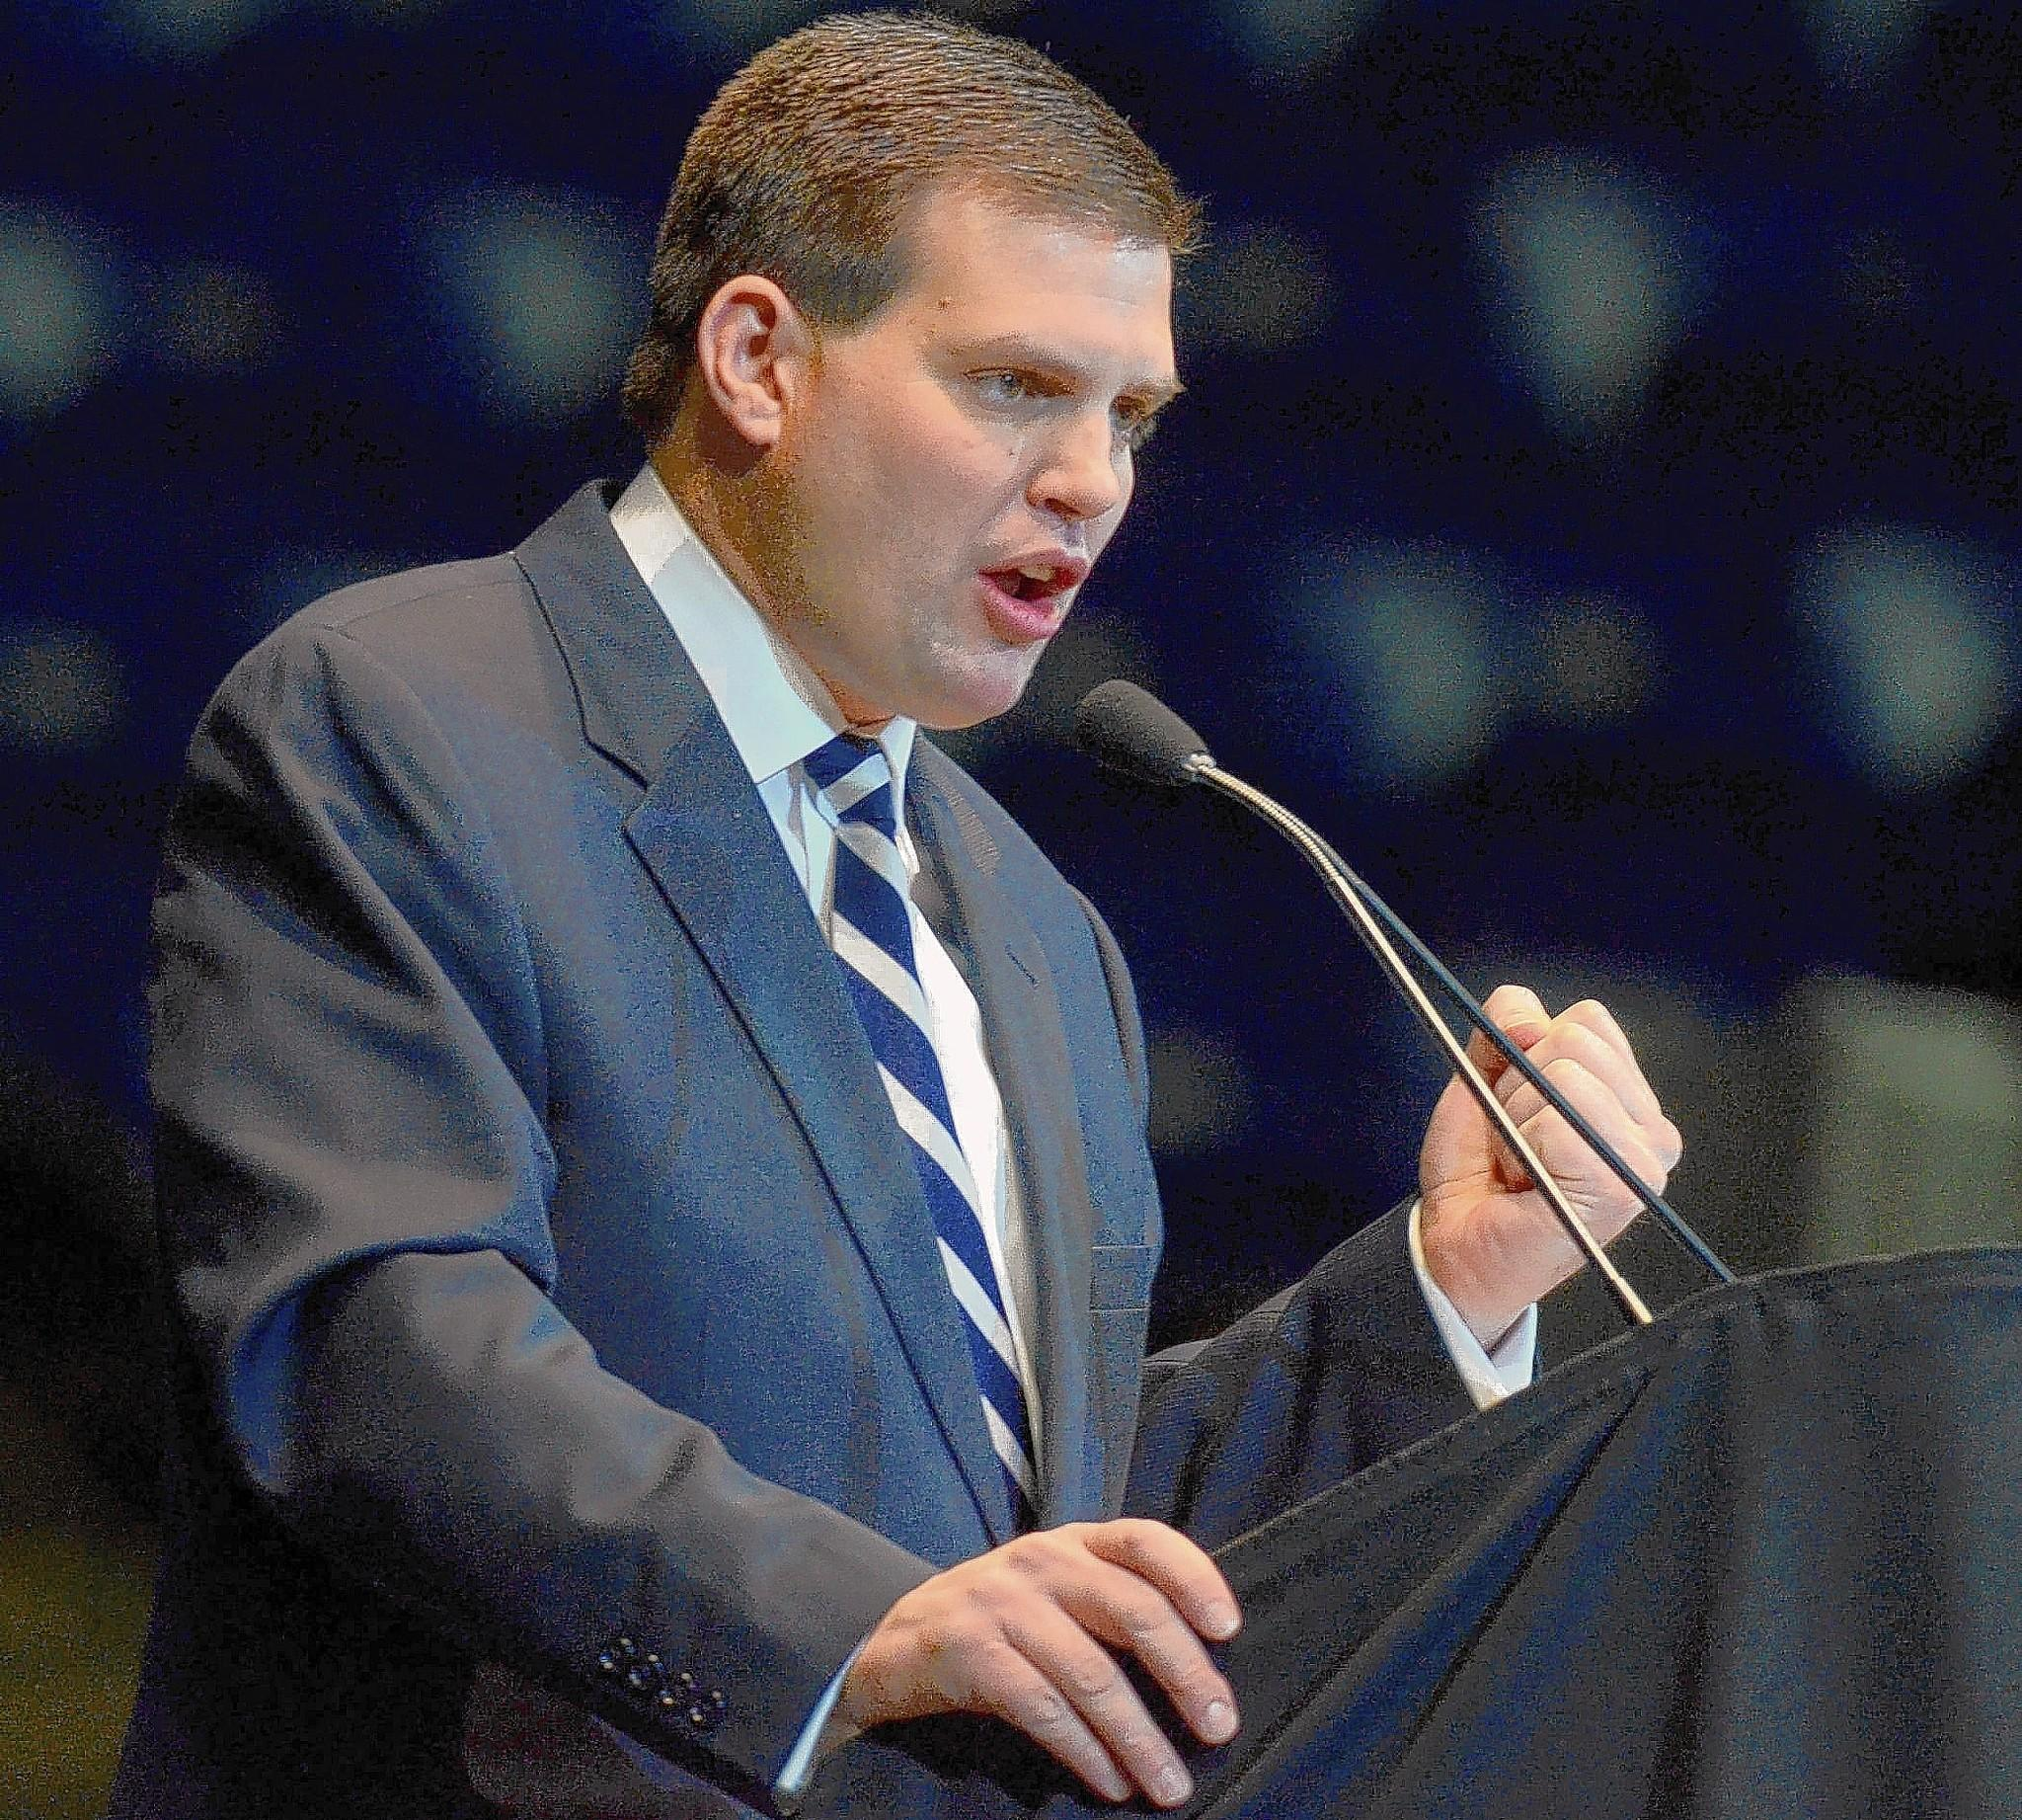 Jay Paterno, shown during the memorial service for his father Joe Paterno in 2012, is suing Penn State along with former coach Bill Kenney for more than $1 million in damages.